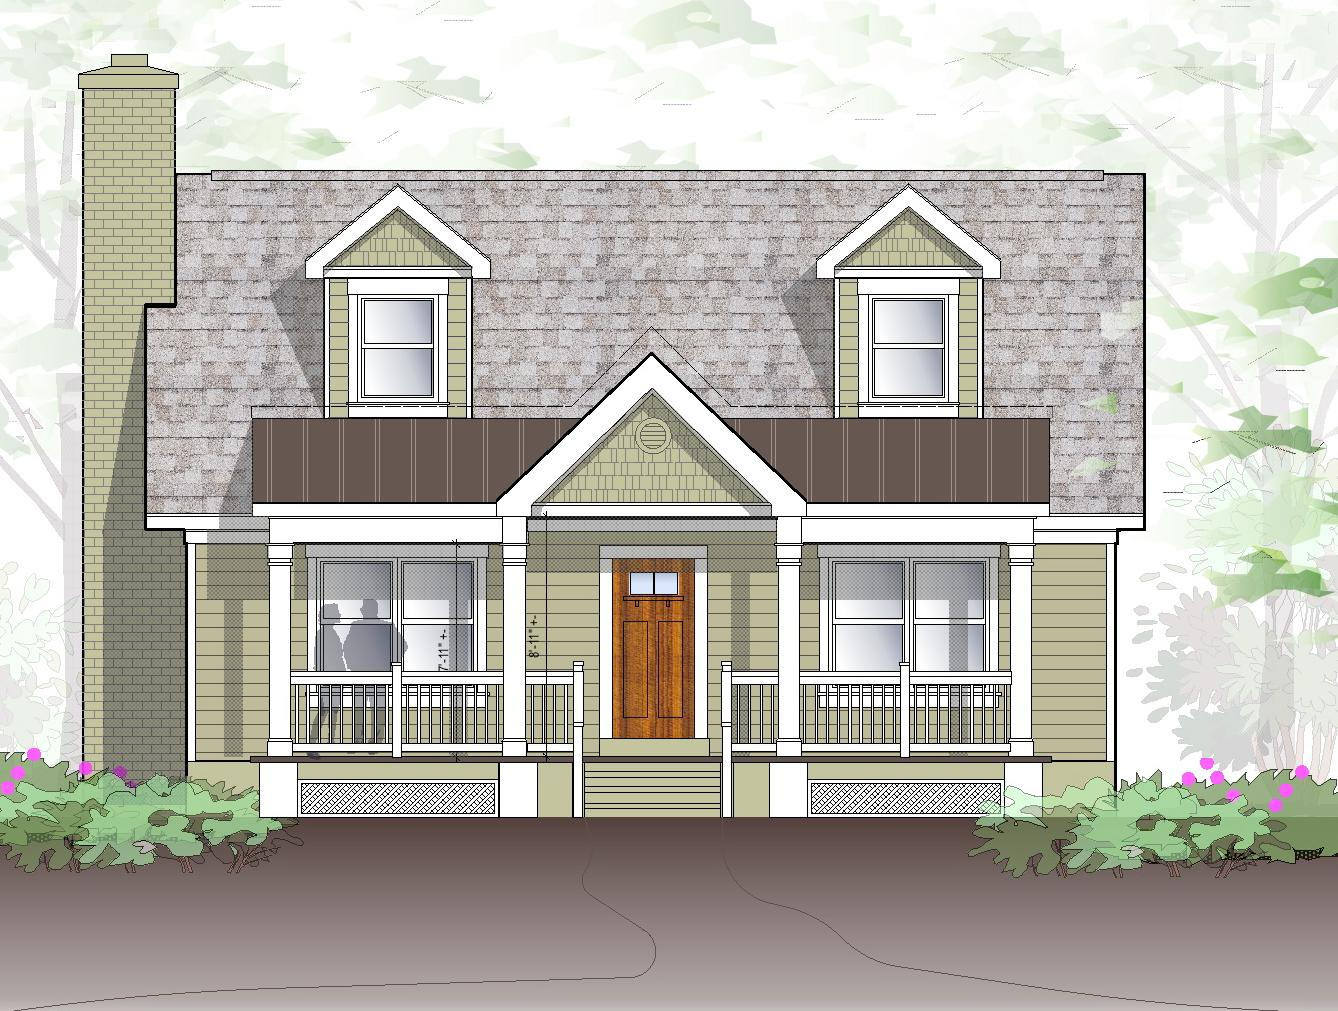 Conjuring home possible exteriors for House roof colors